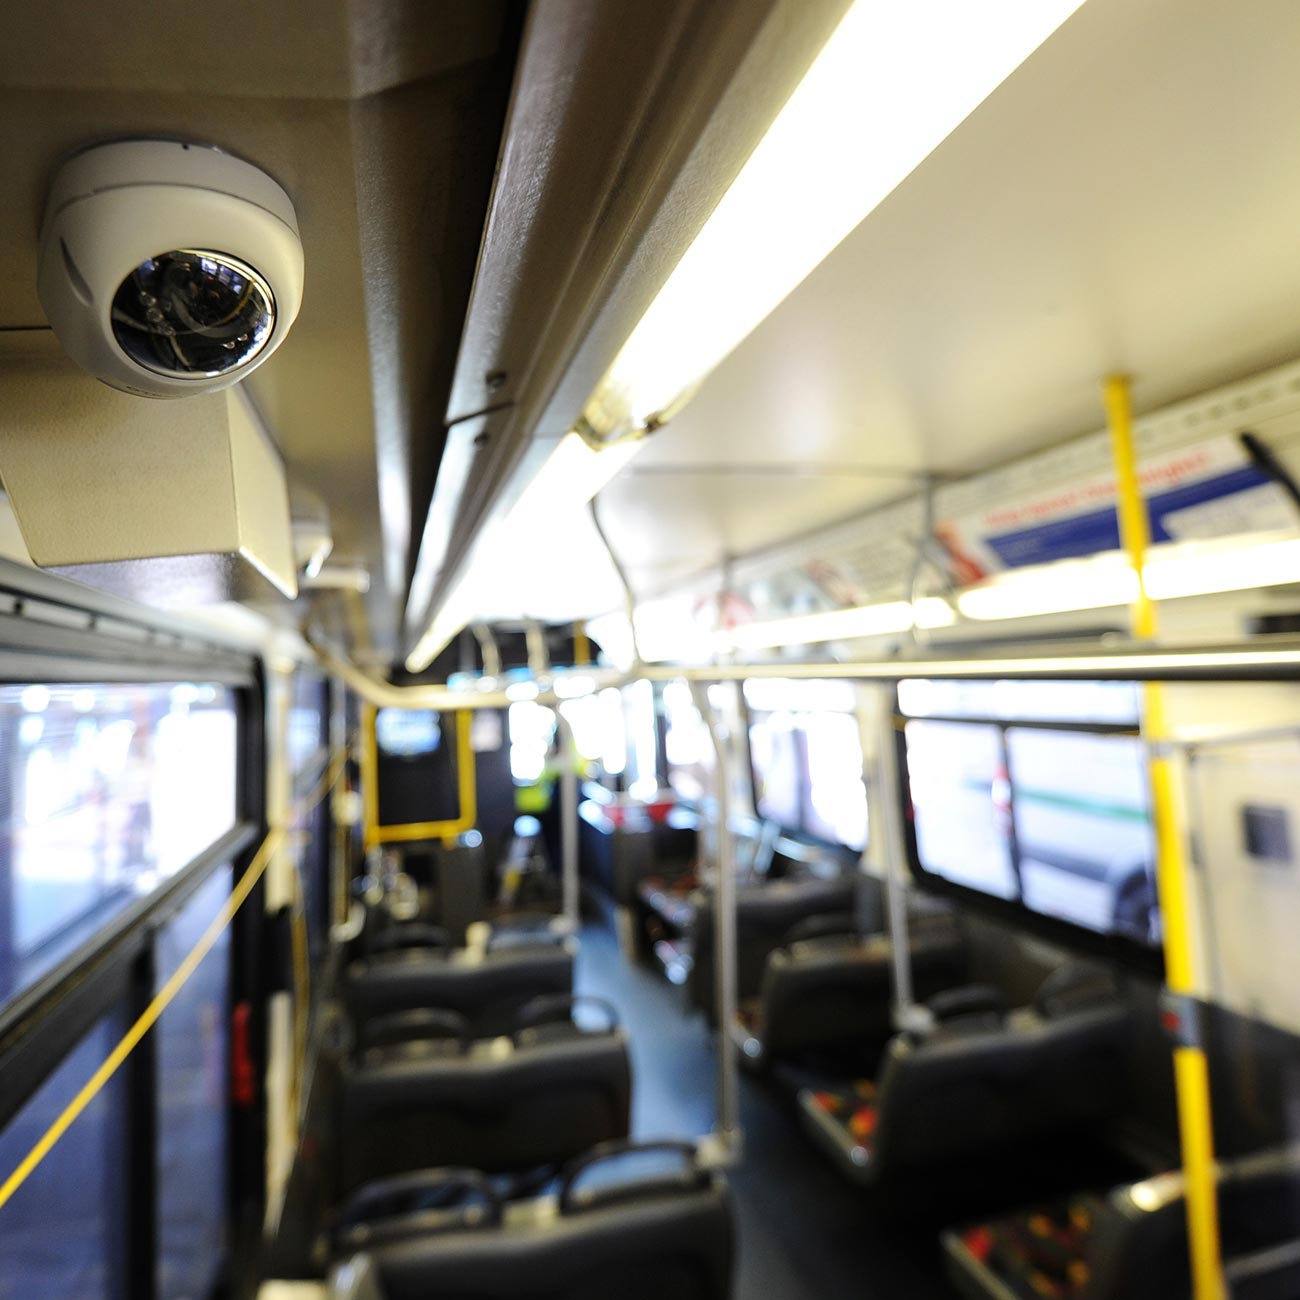 Banned Surveillance Cameras: How to Keep your Transit Operation Safe